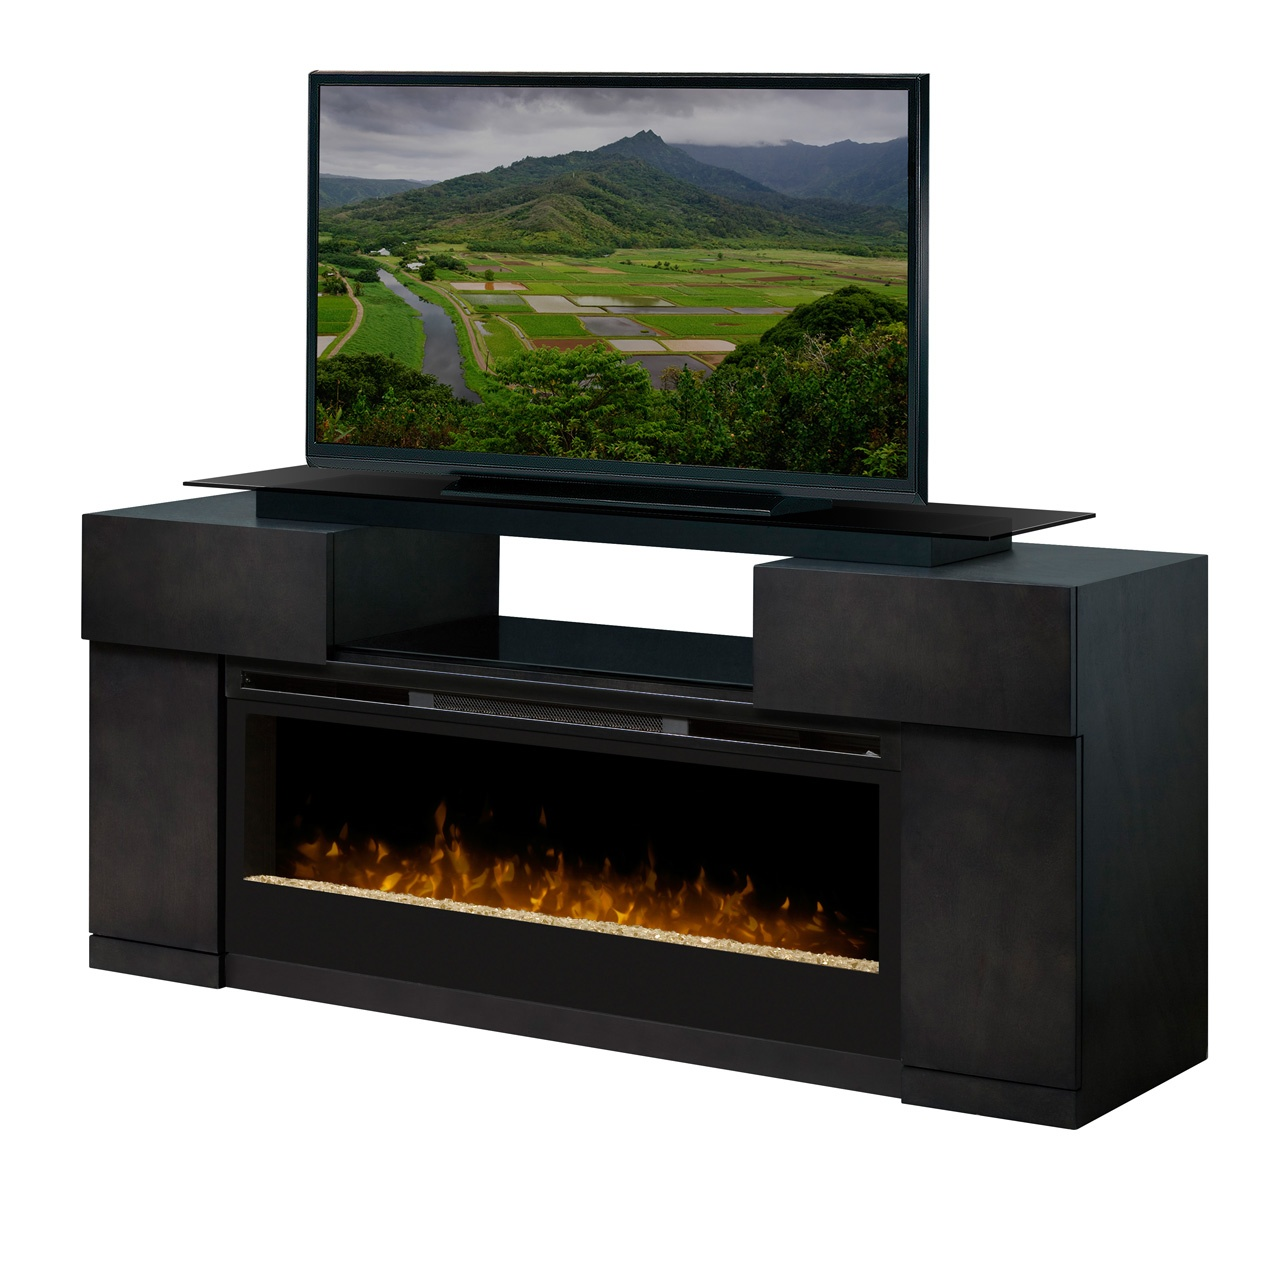 Dimplex Concord GDS50-1243SC Electric Fireplace Media ...